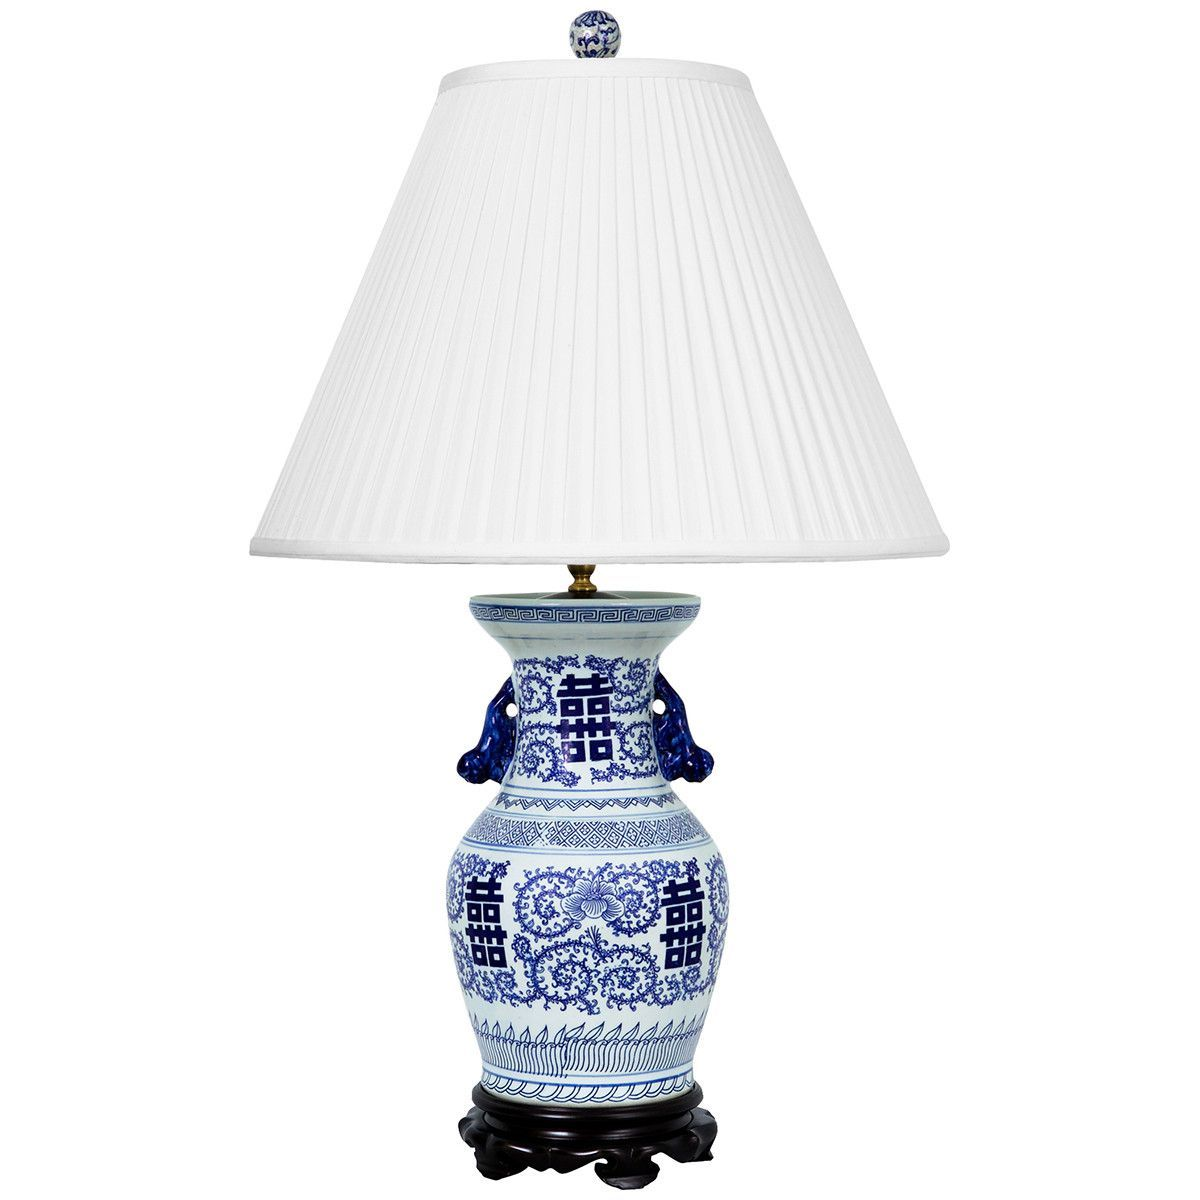 Frederick cooper ftp035s1 double happiness table lamp products frederick cooper ftp035s1 double happiness table lamp geotapseo Image collections